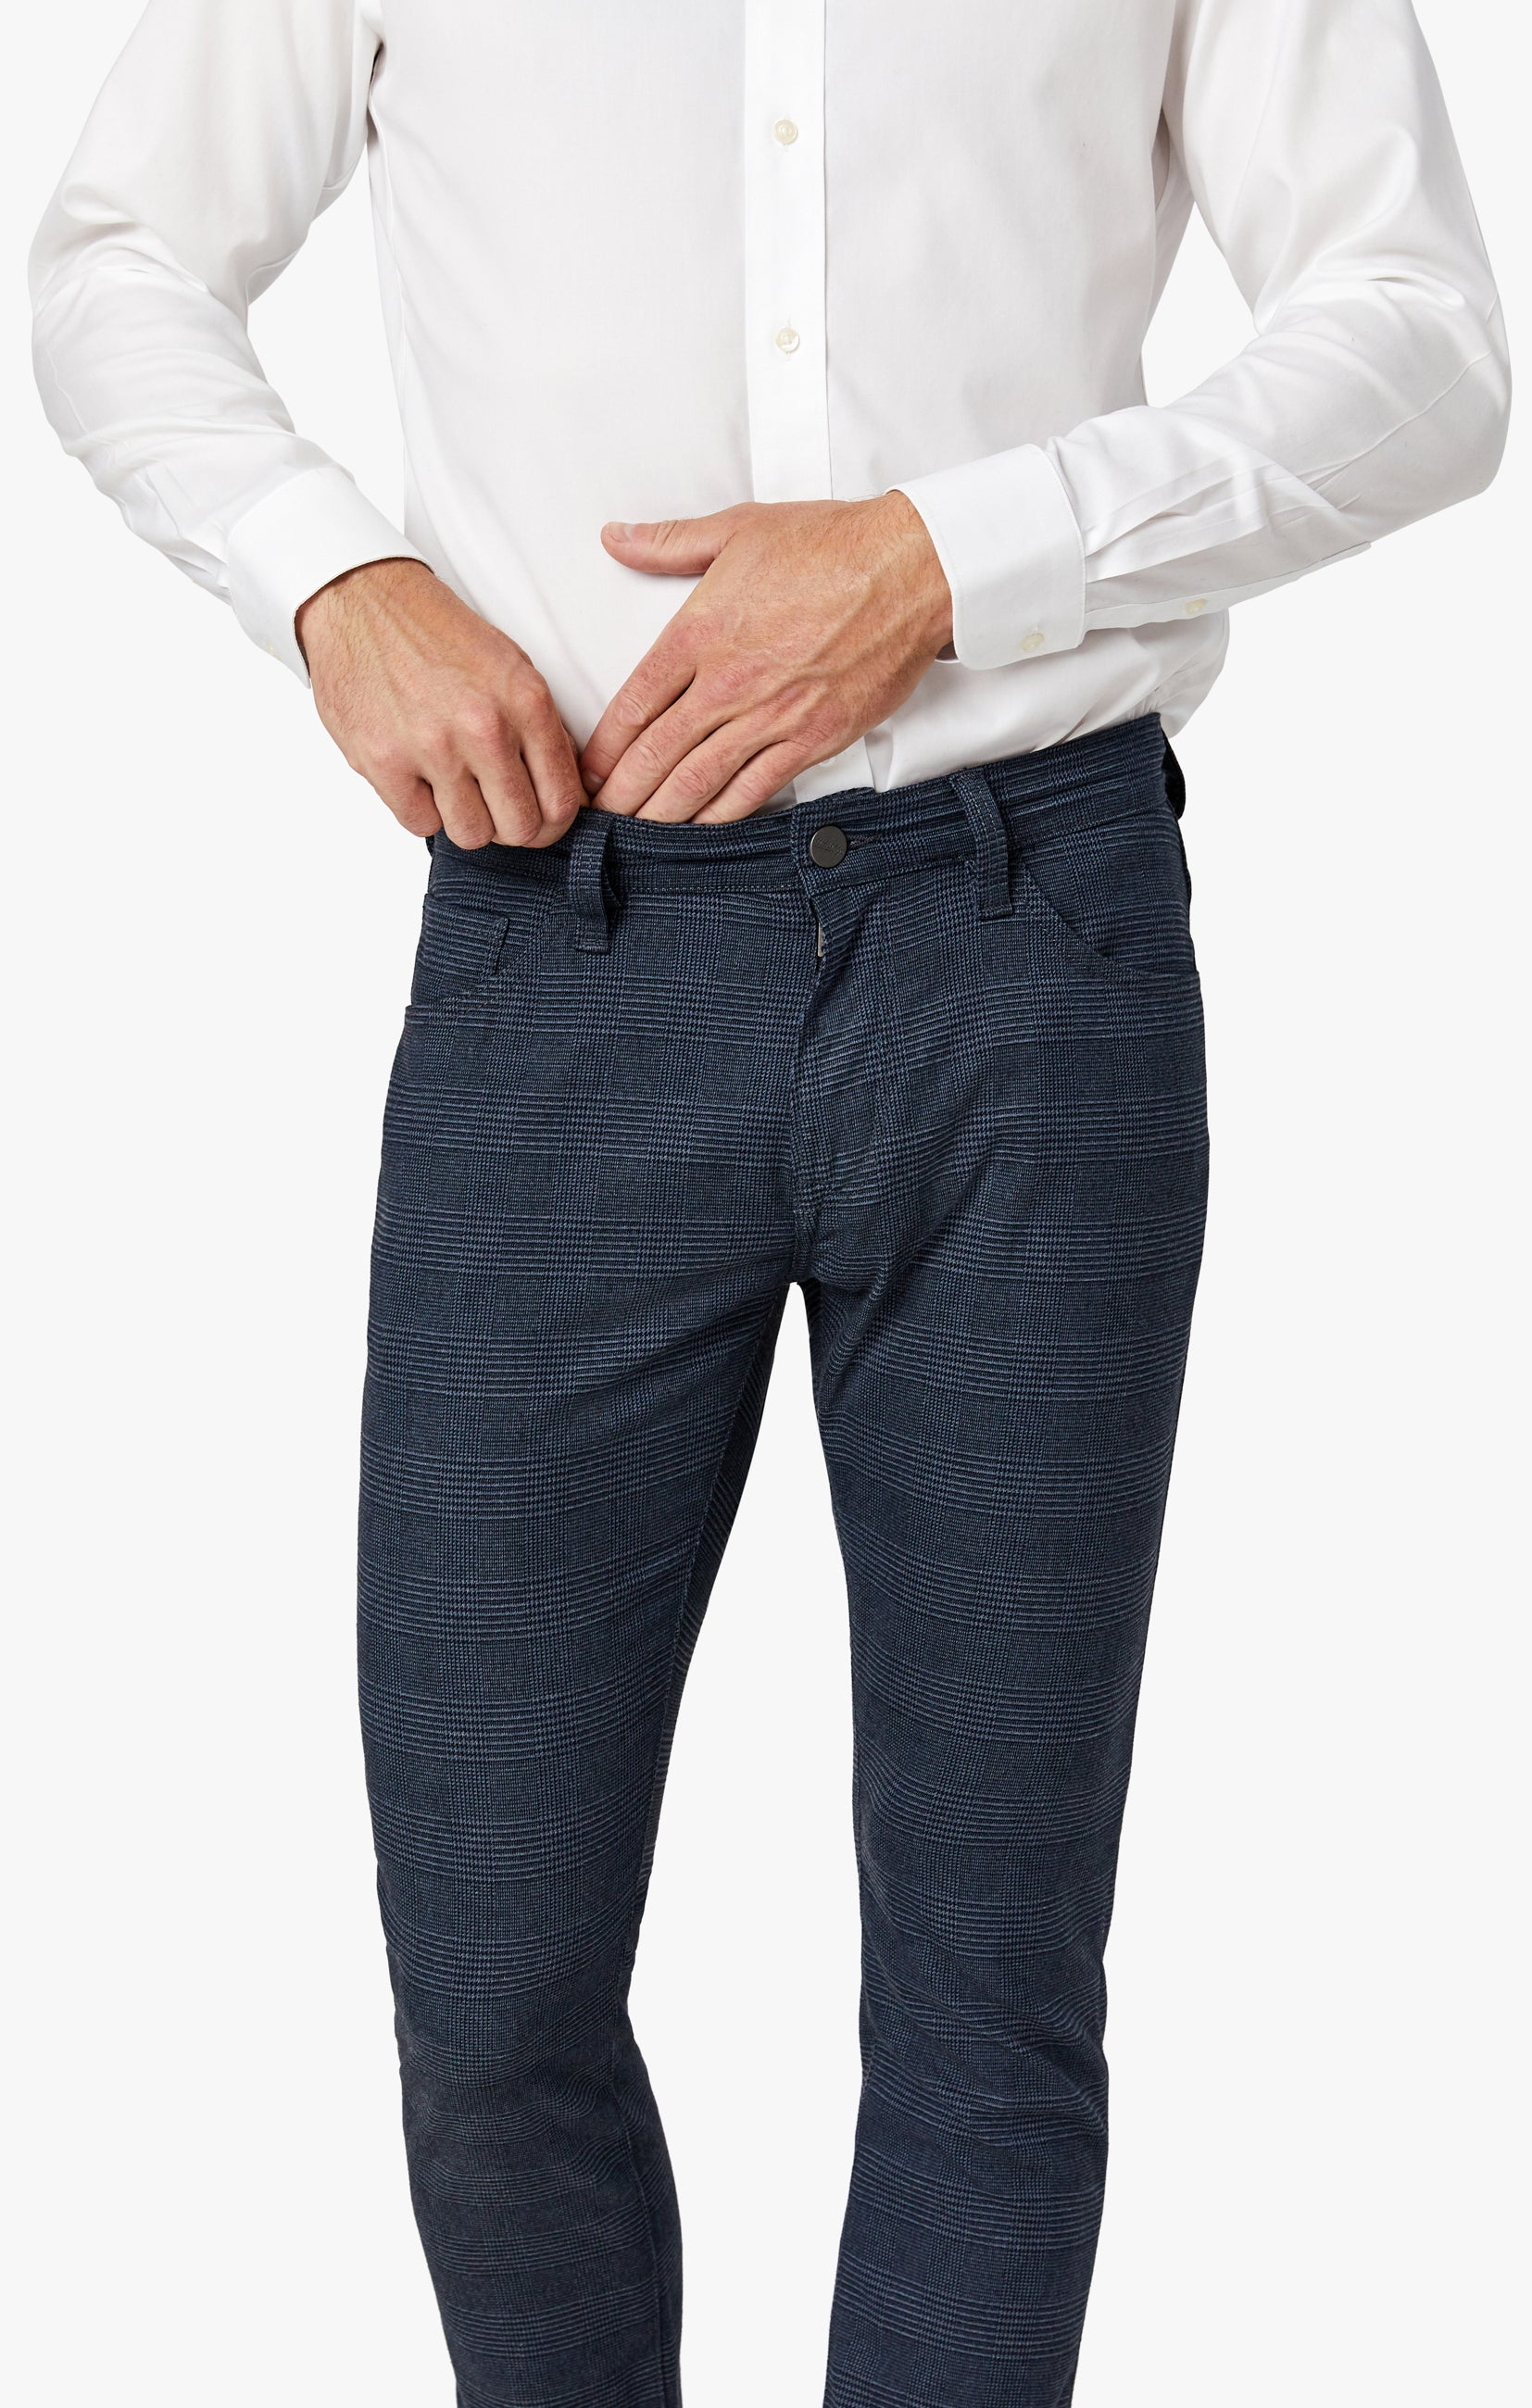 Courage Straight Leg Pants in Navy Checked Image 5